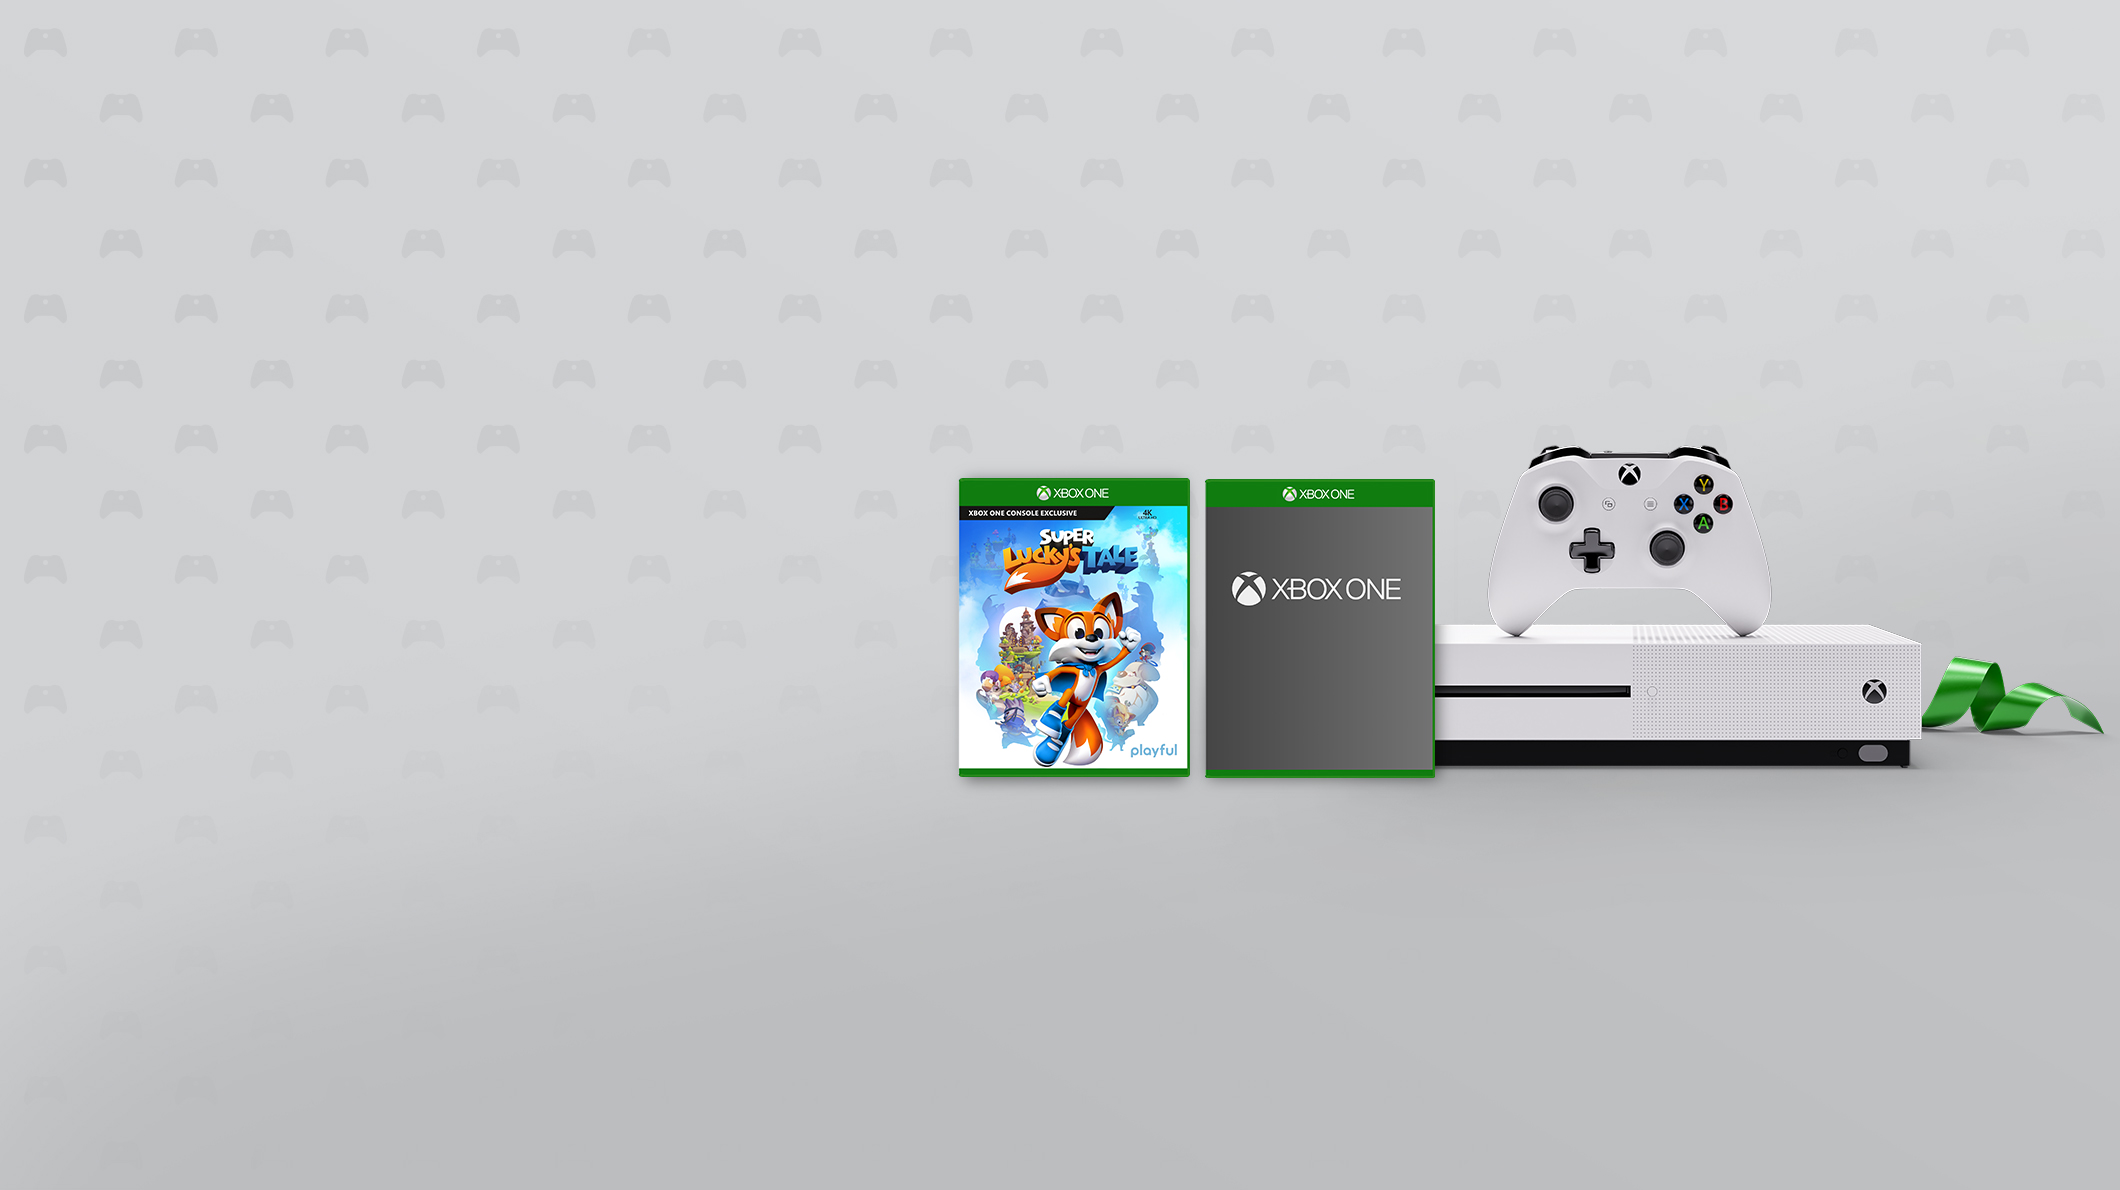 An Xbox One S, controller, and two games